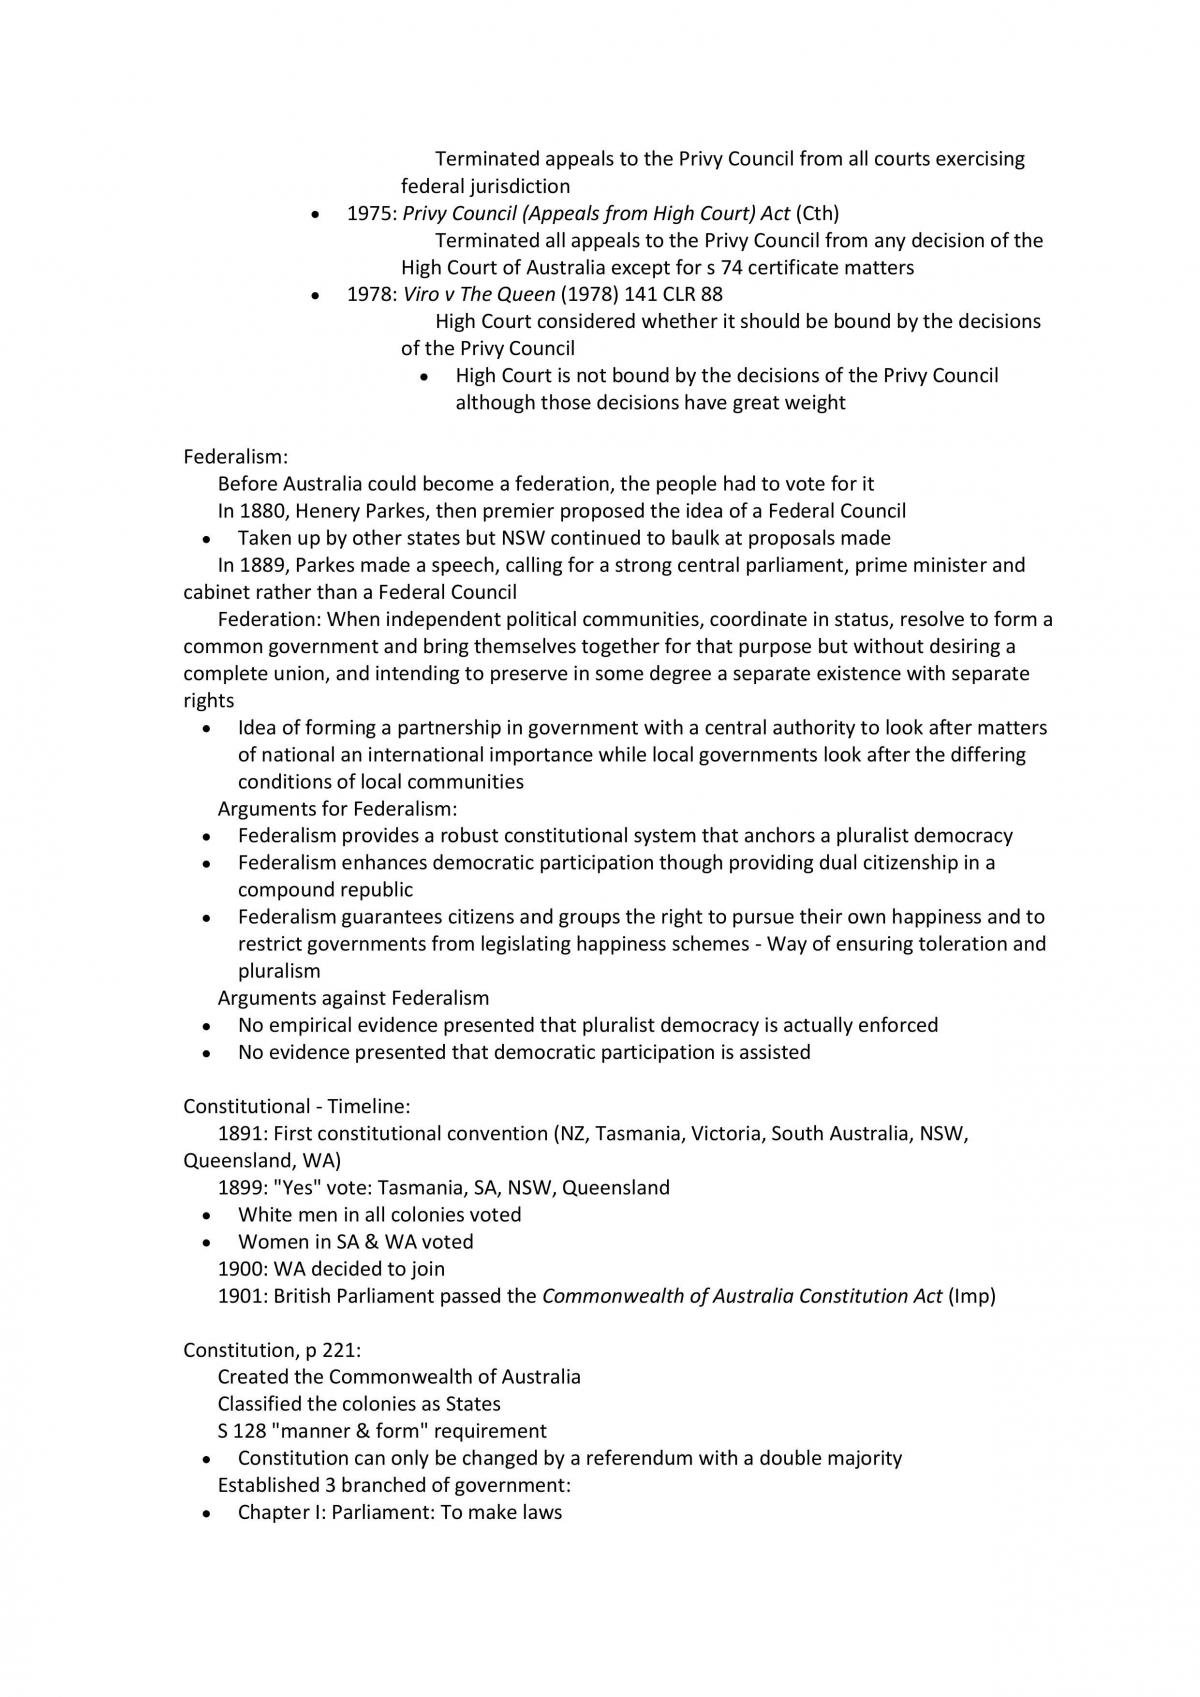 Complete Notes for LAWS1052 - Page 27